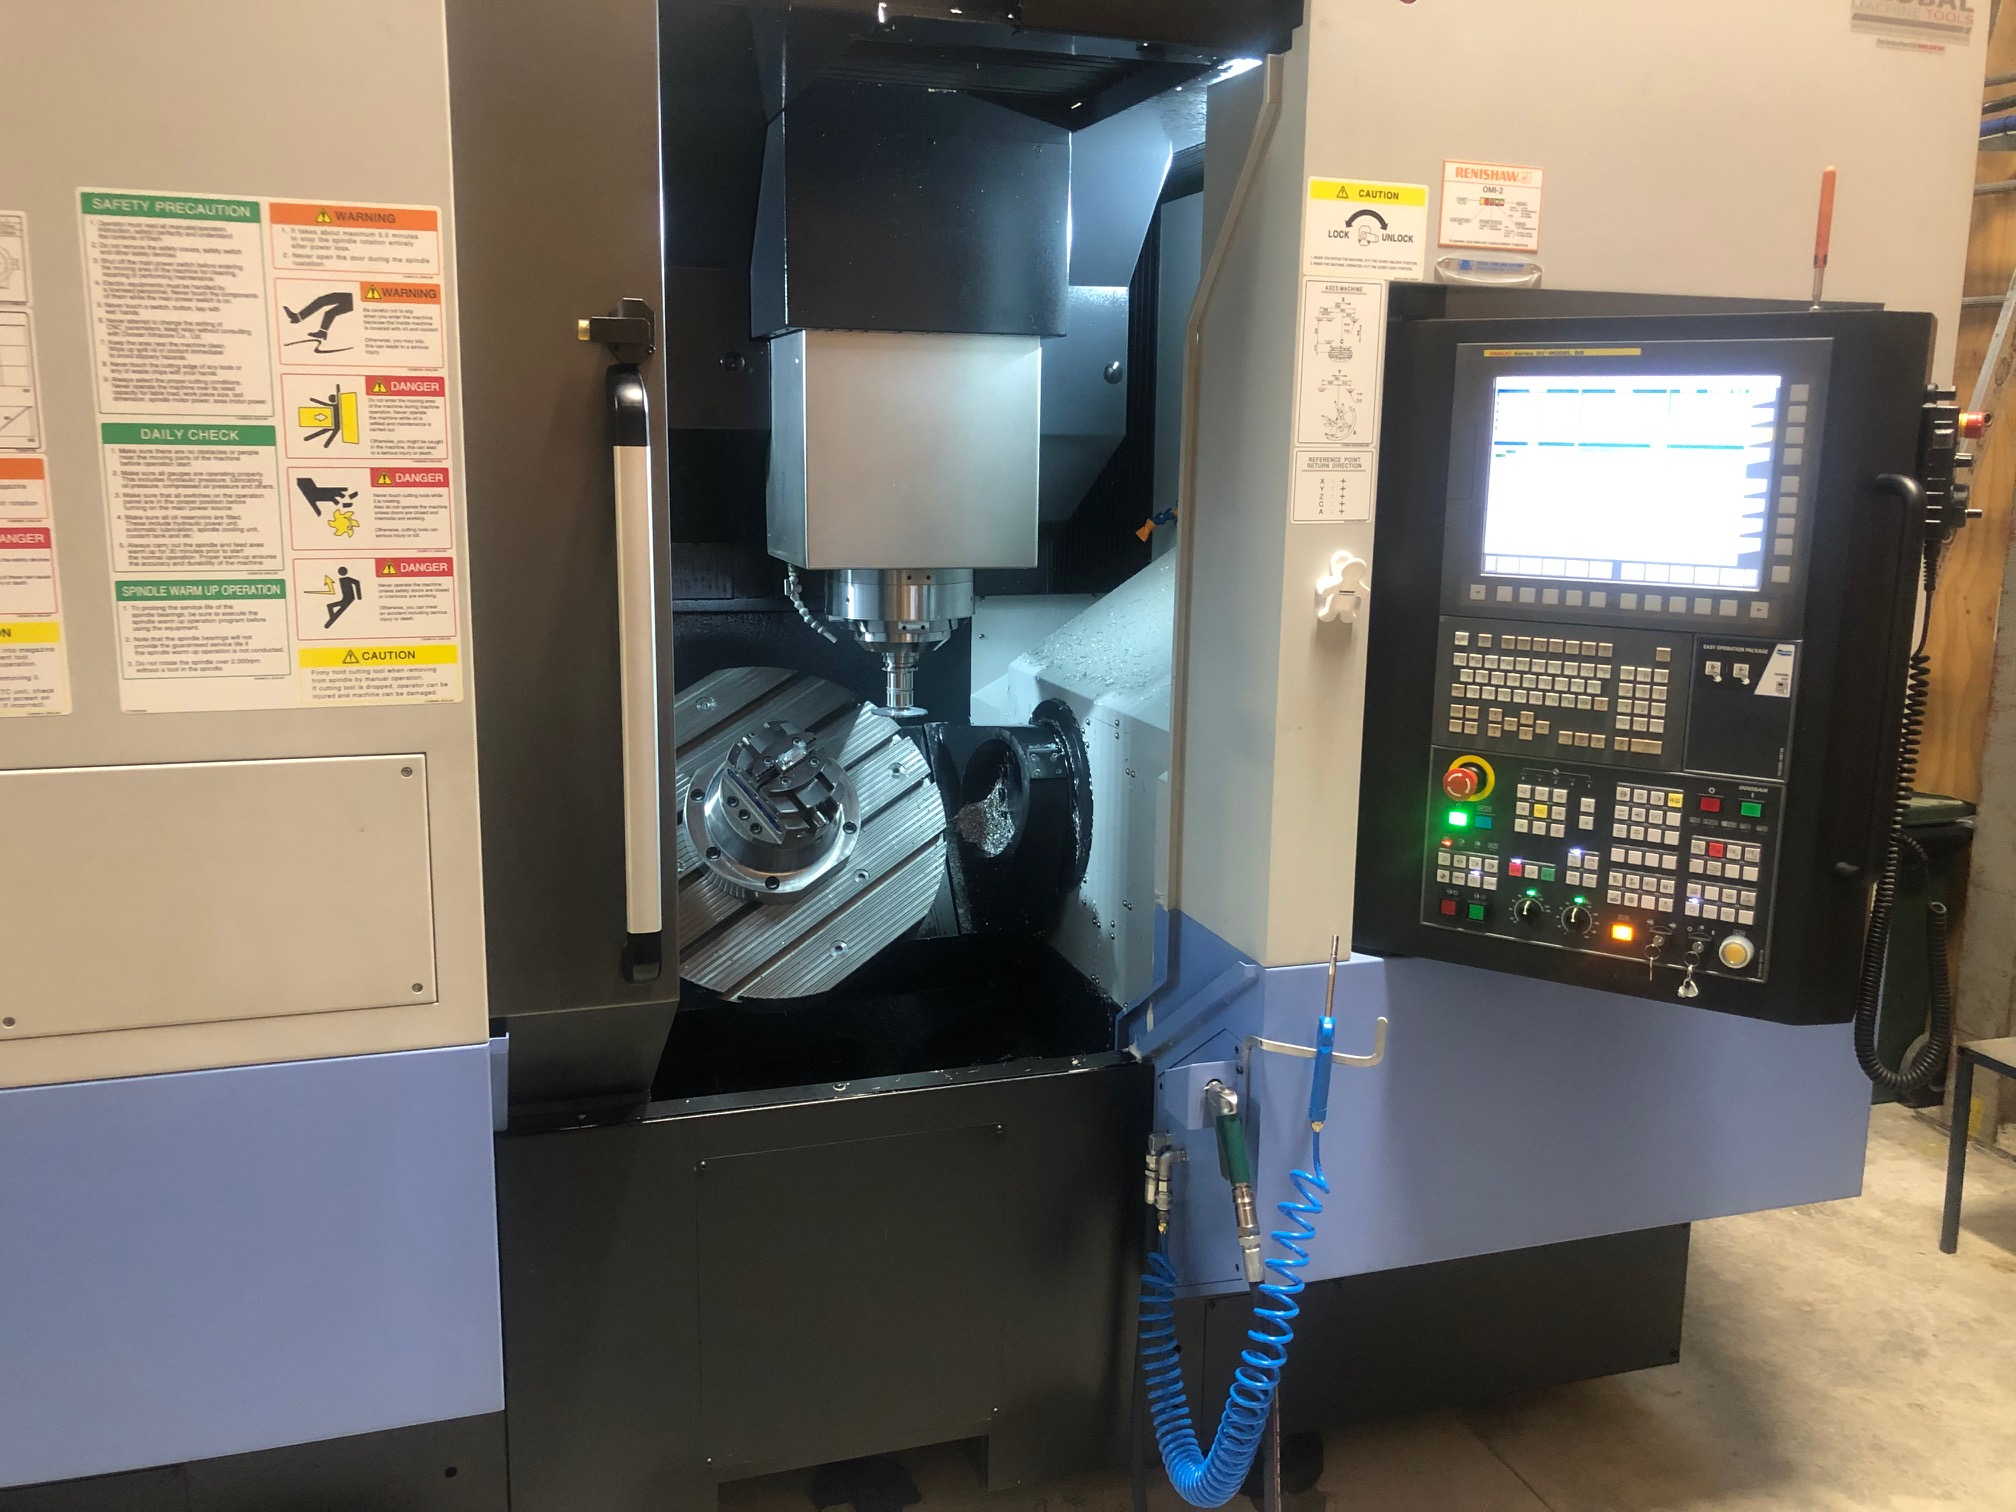 5-AXIS MACHINE TAKING CNC MILLING TO A NEW LEVEL | Metco